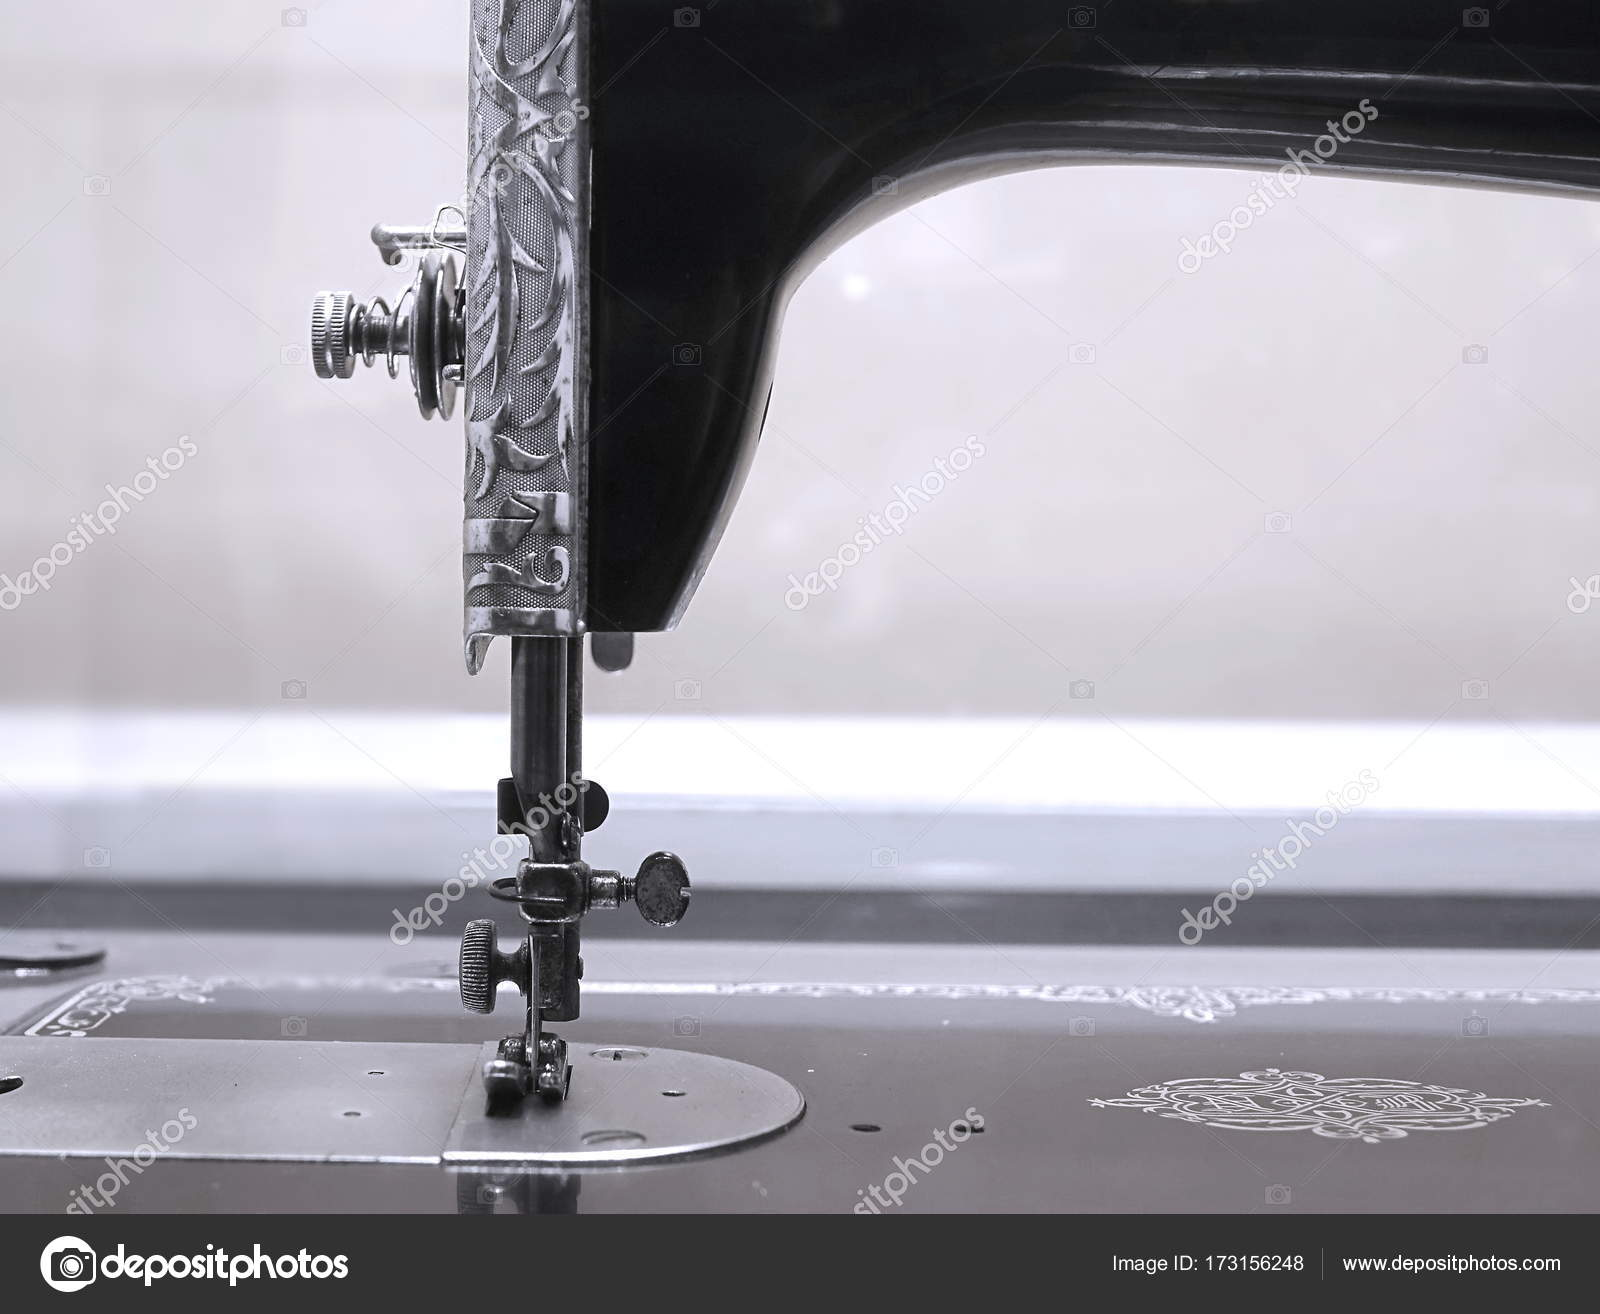 Sewing Machine Old Fashioned